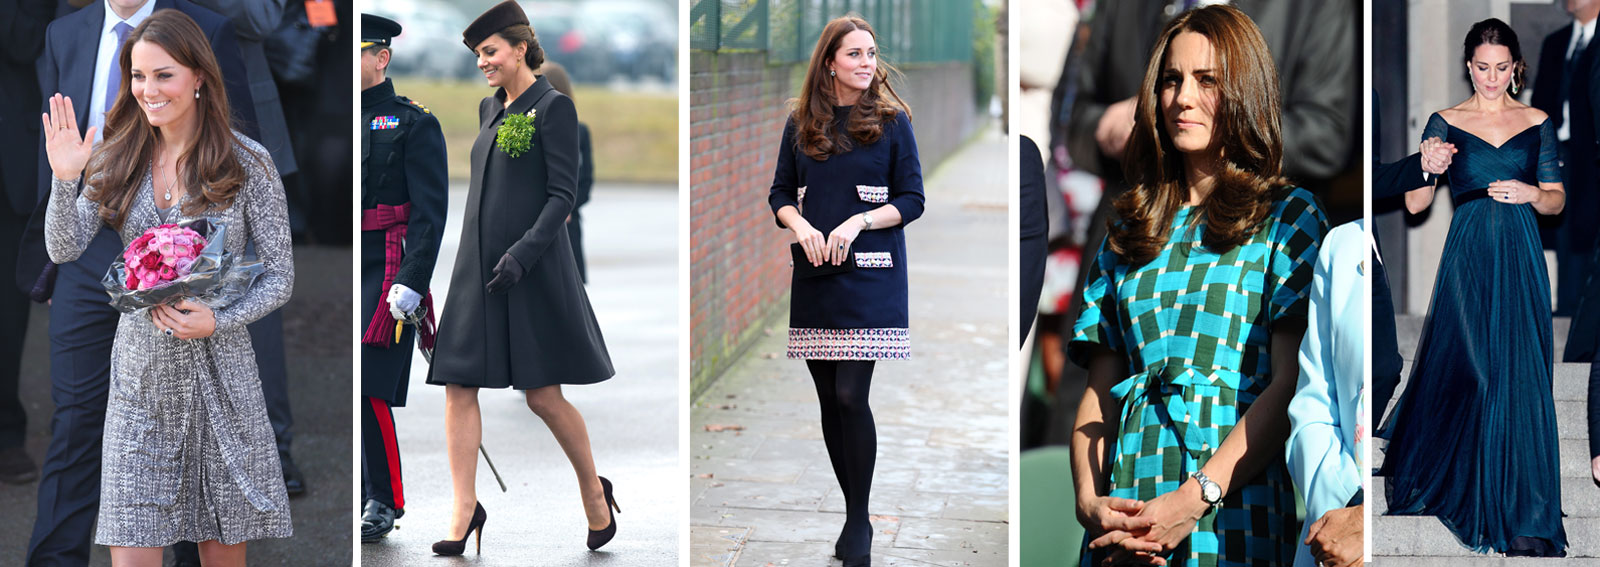 kate-middleton-look-premaman-DESKTOP